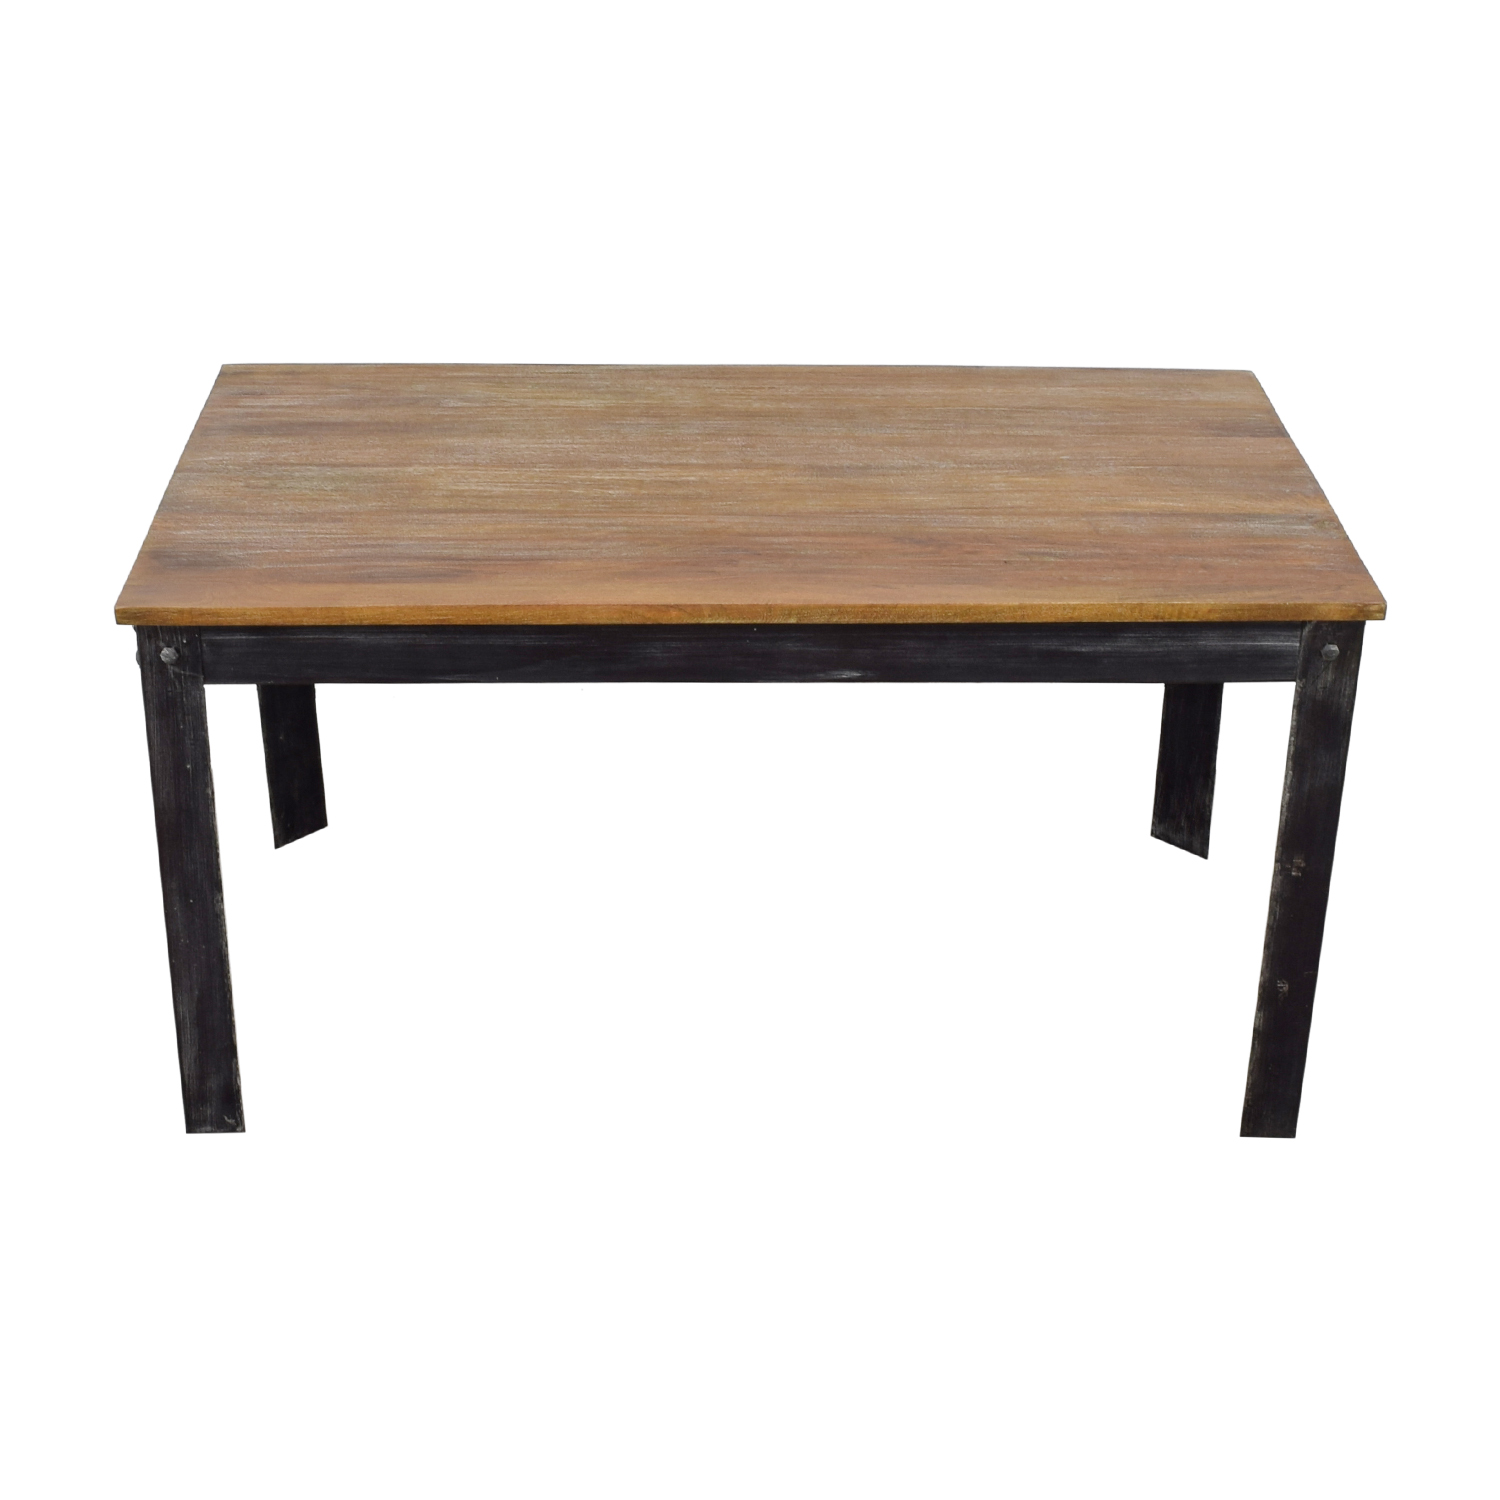 Modus Modus Rustic Farmhouse Dining Table or Desk nj